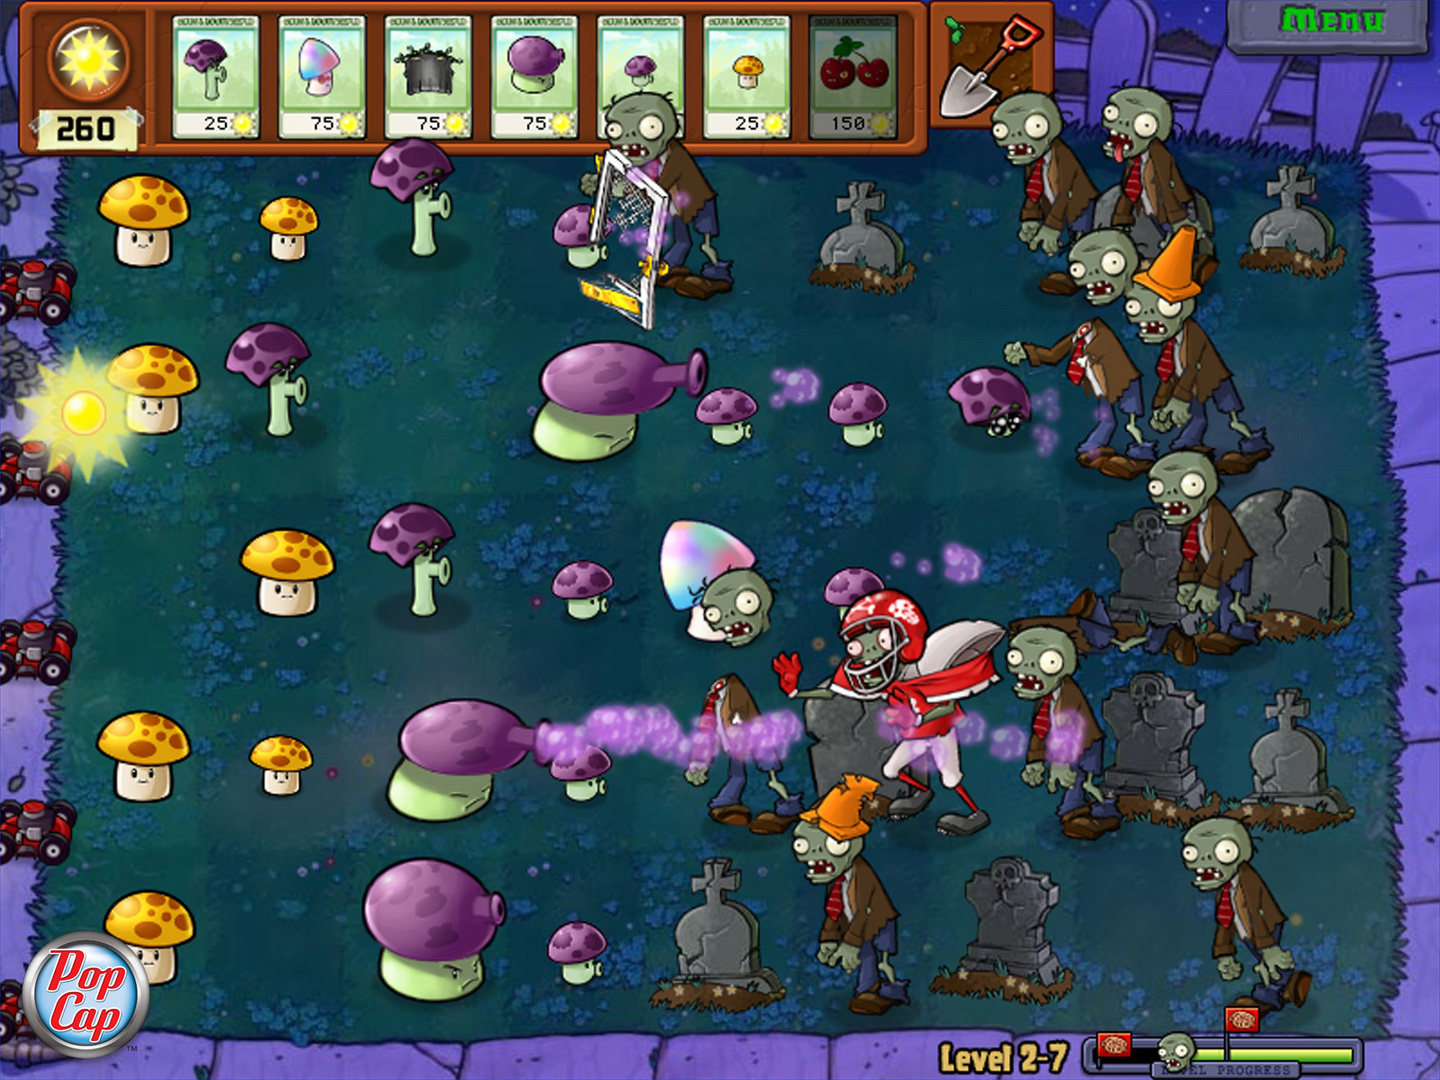 plants vs zombies pc game free download highly compressed